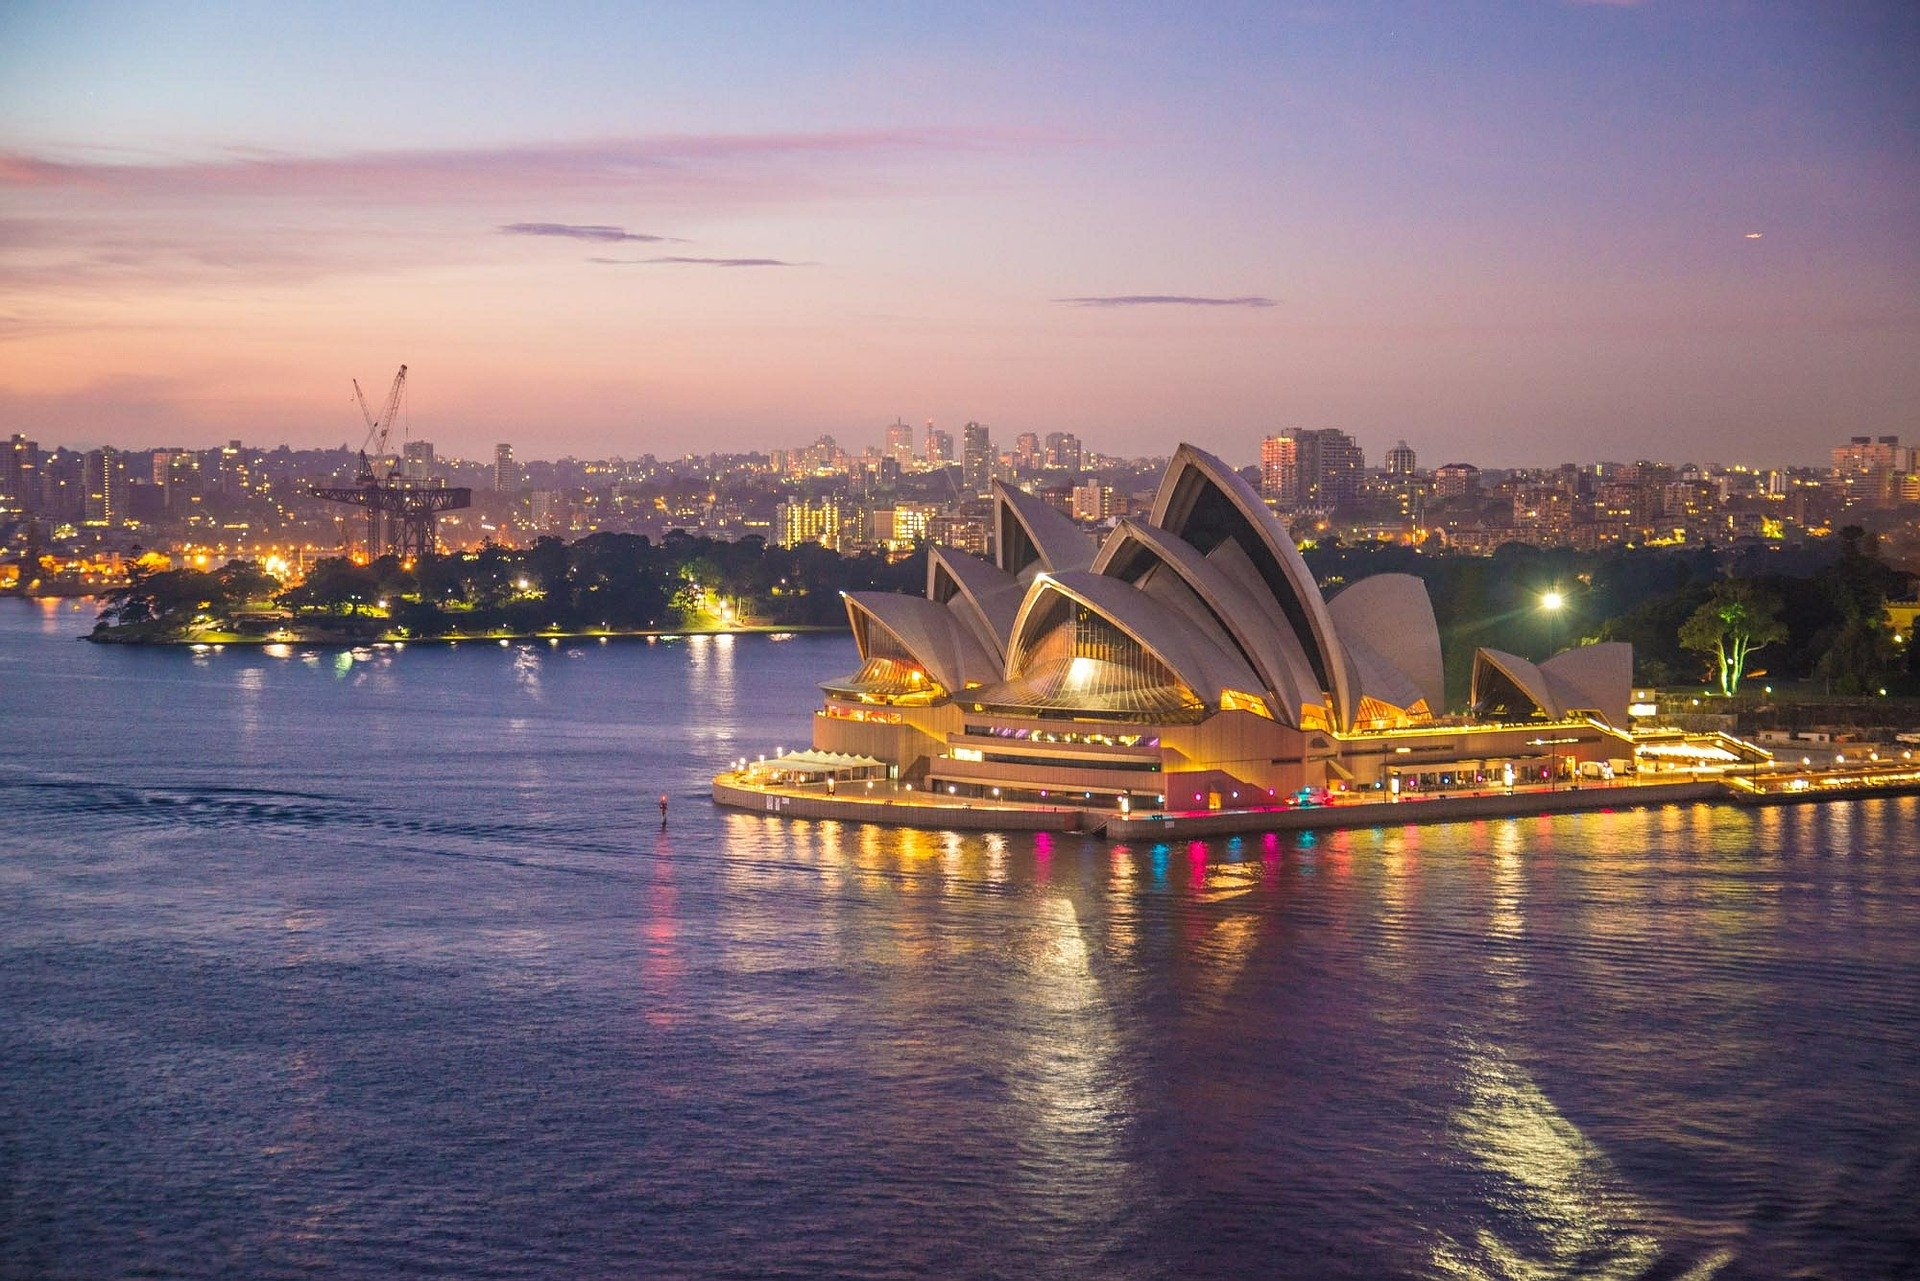 The Australian Government Launched GTES Program in Late 2019 to Attract Individuals and Businesses